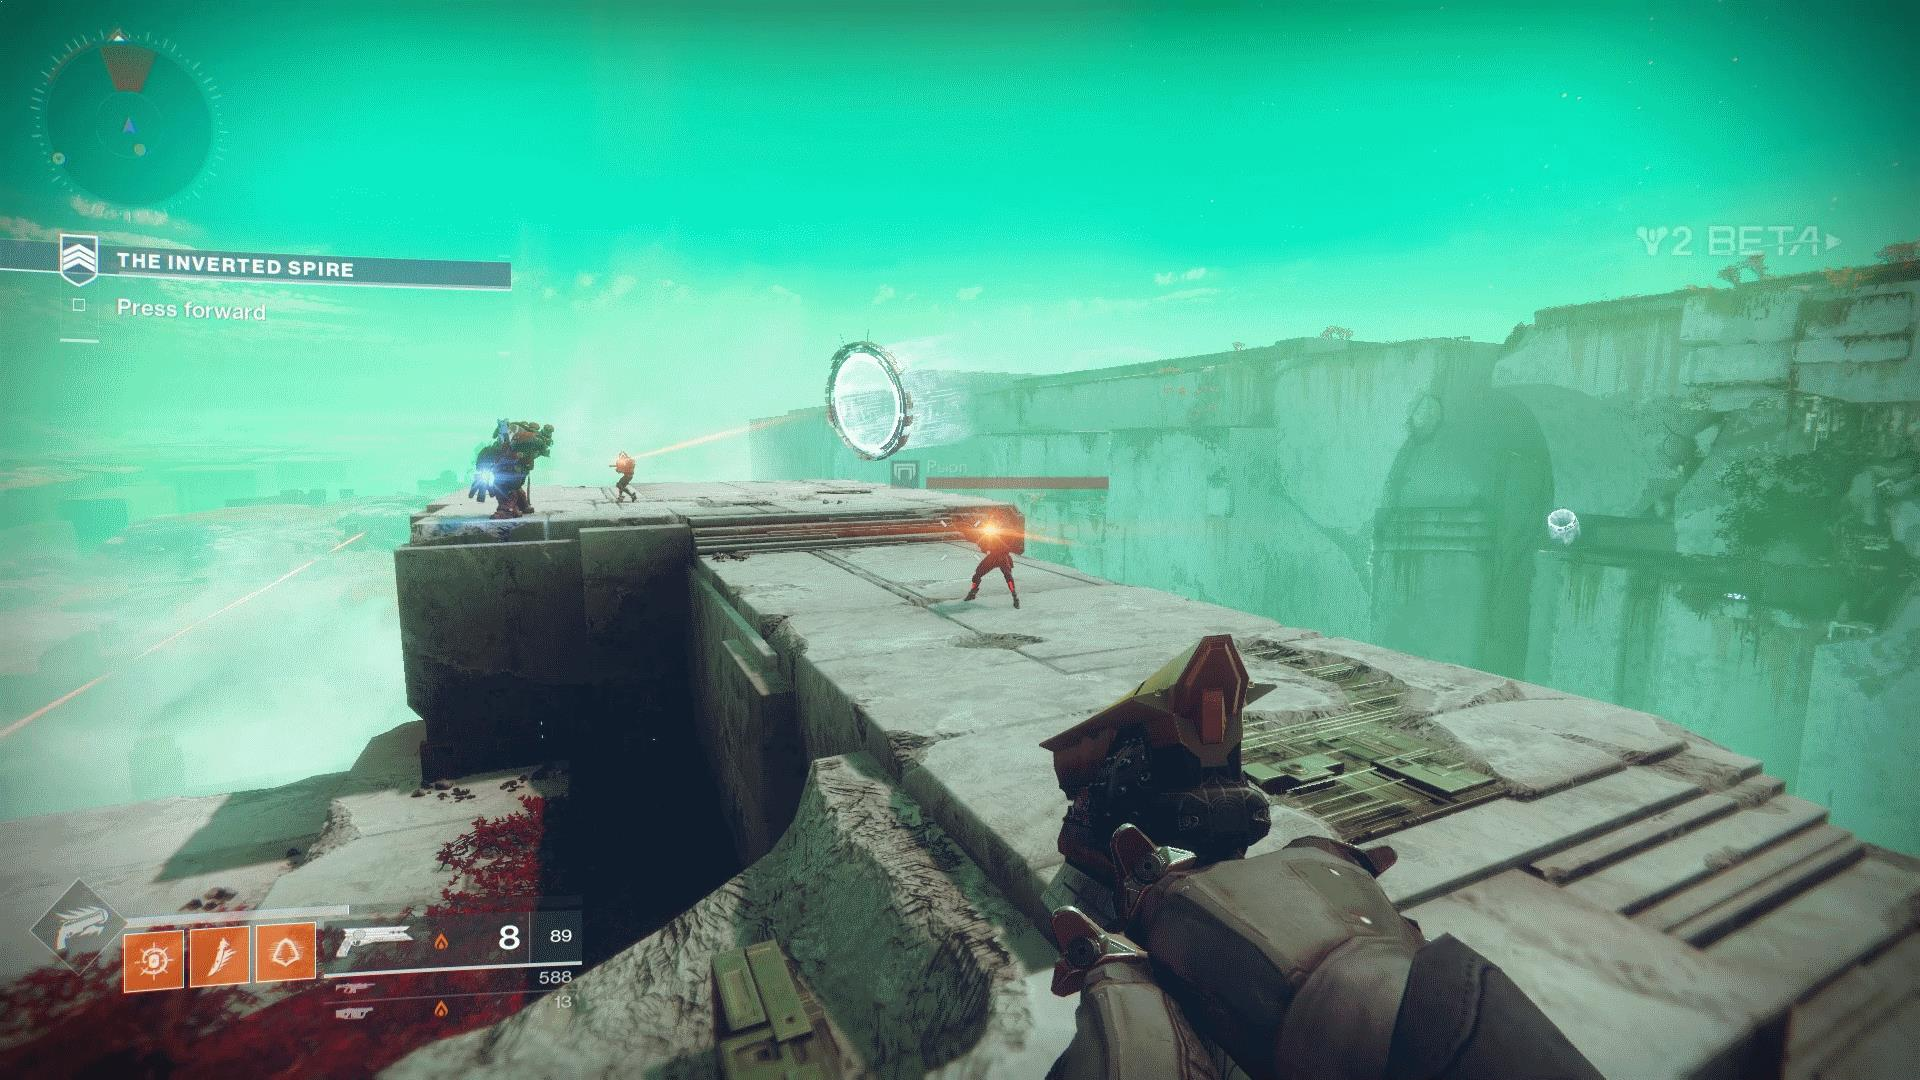 Destiny 2 with PS4 Pro and Xbox One X update - G2A News